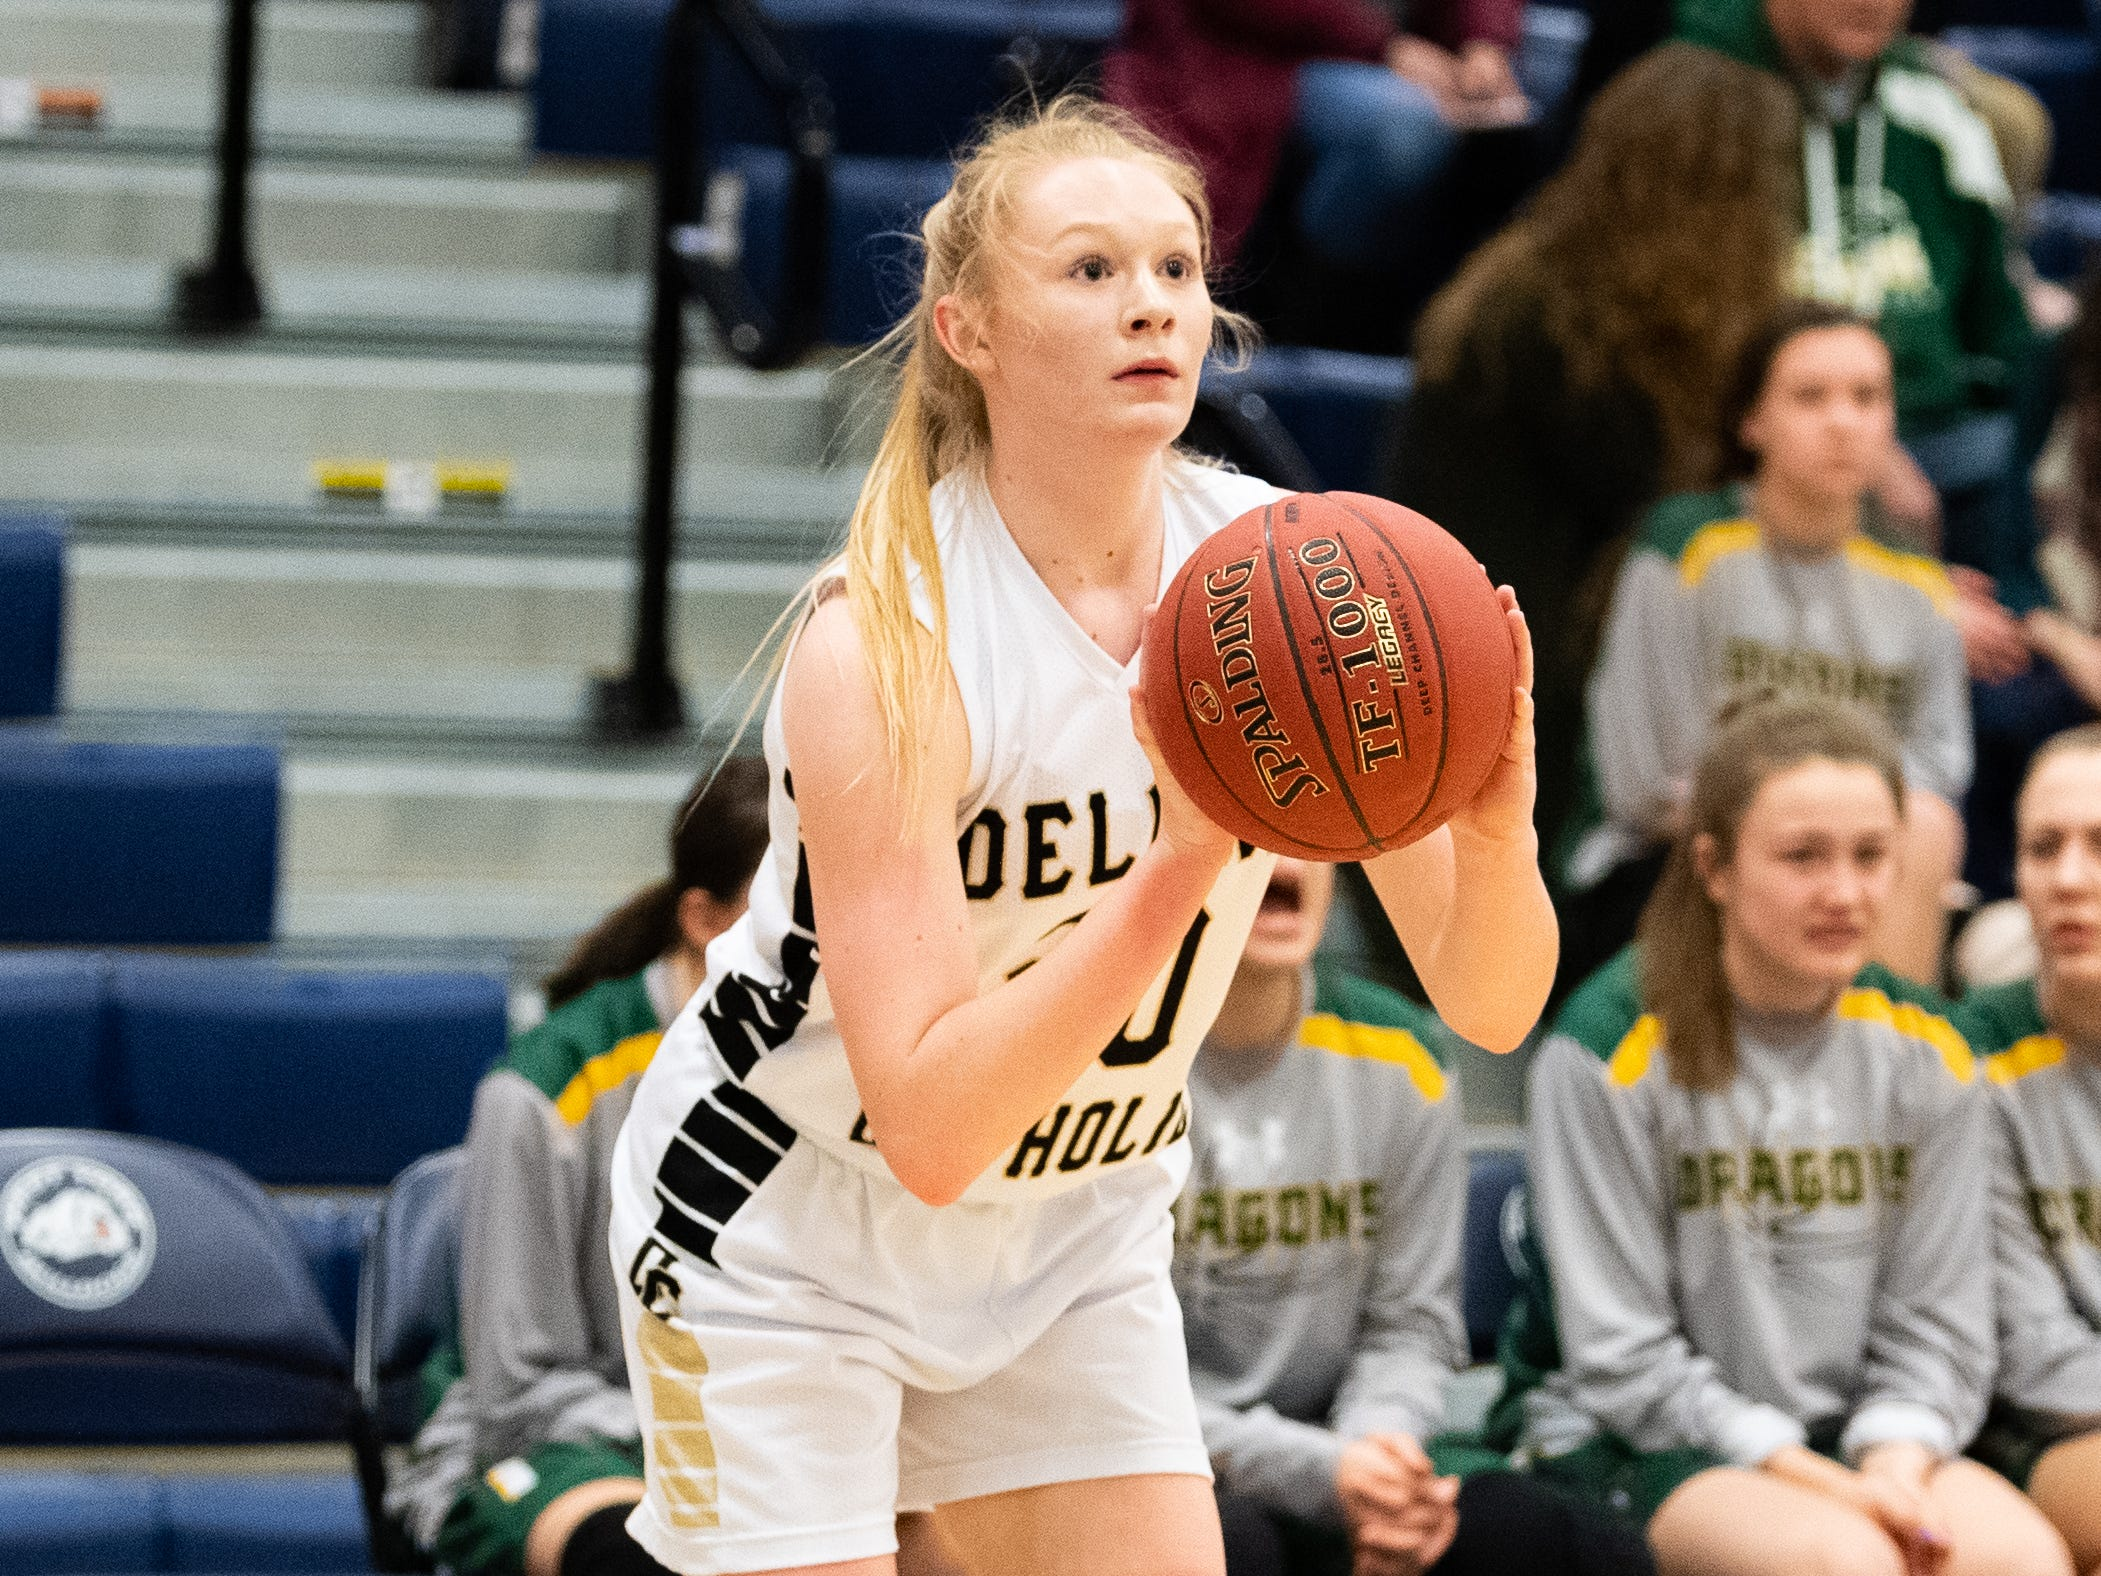 Brooke Lawyer (20) shoots the three-pointer during the PIAA first round girls' basketball game between Delone Catholic and Lewisburg Area Friday, March 8, 2019 at West York Area High School. The Squires lead the Green Dragons.